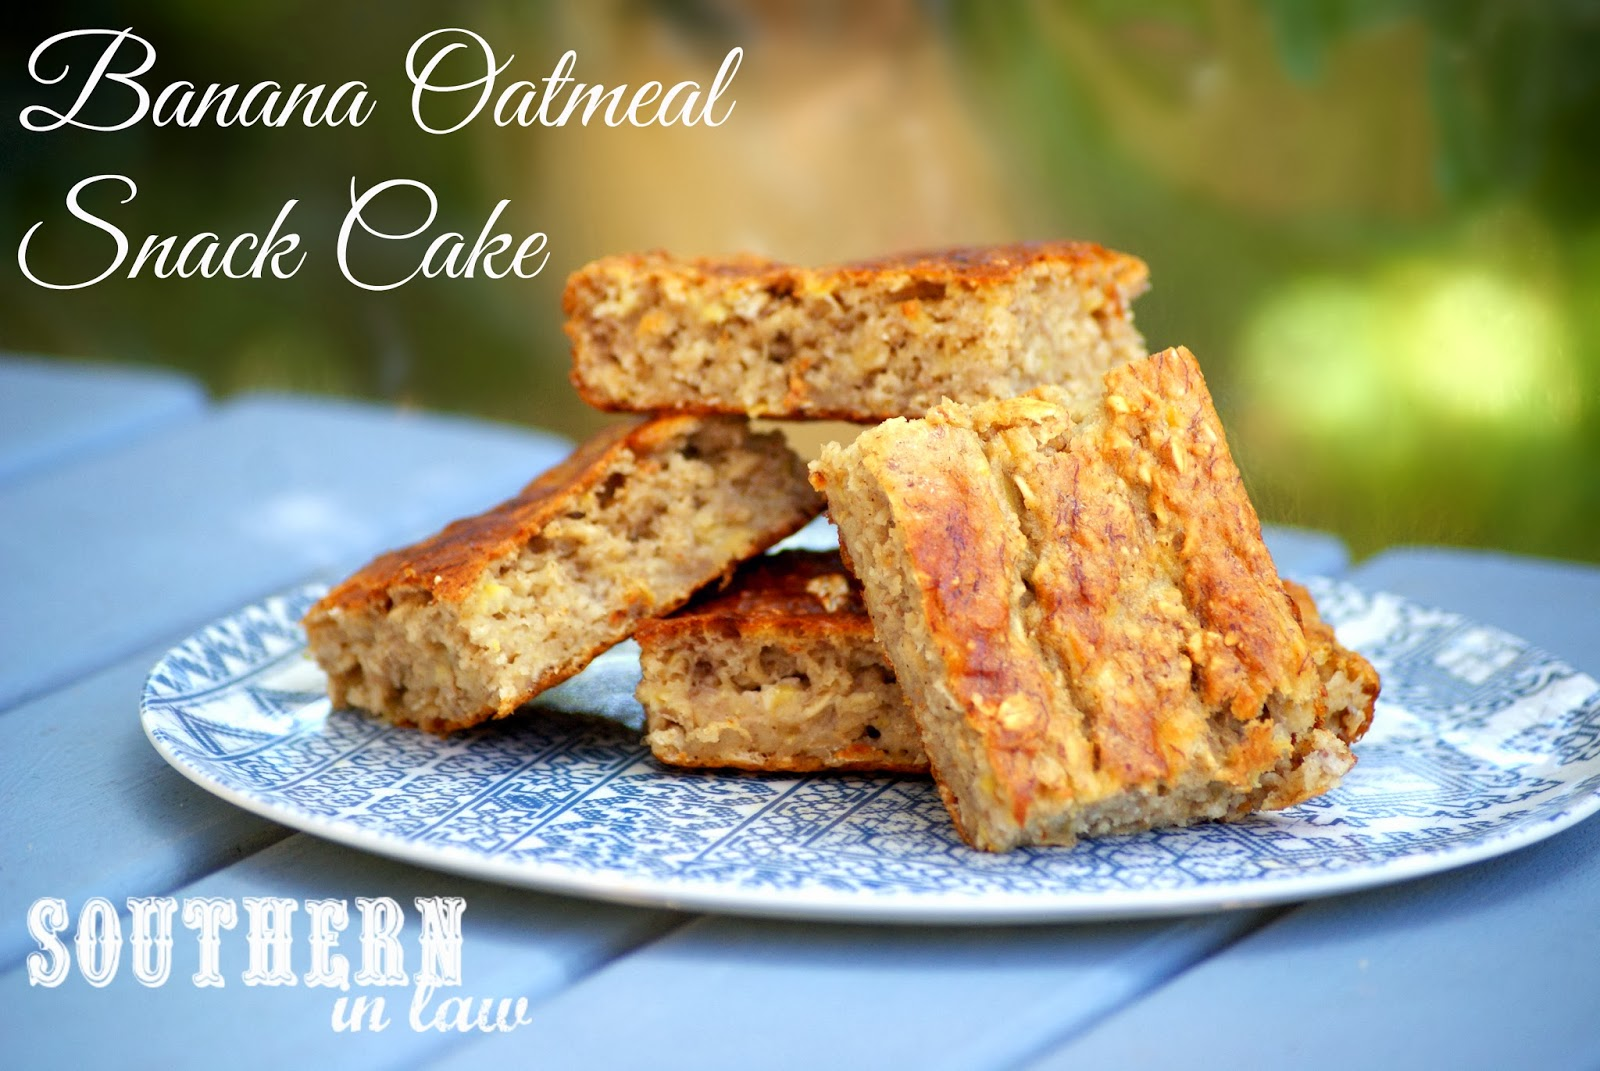 Low Fat Gluten Free Cake Recipes: Southern In Law: Recipe: Banana Oatmeal Snack Cake With